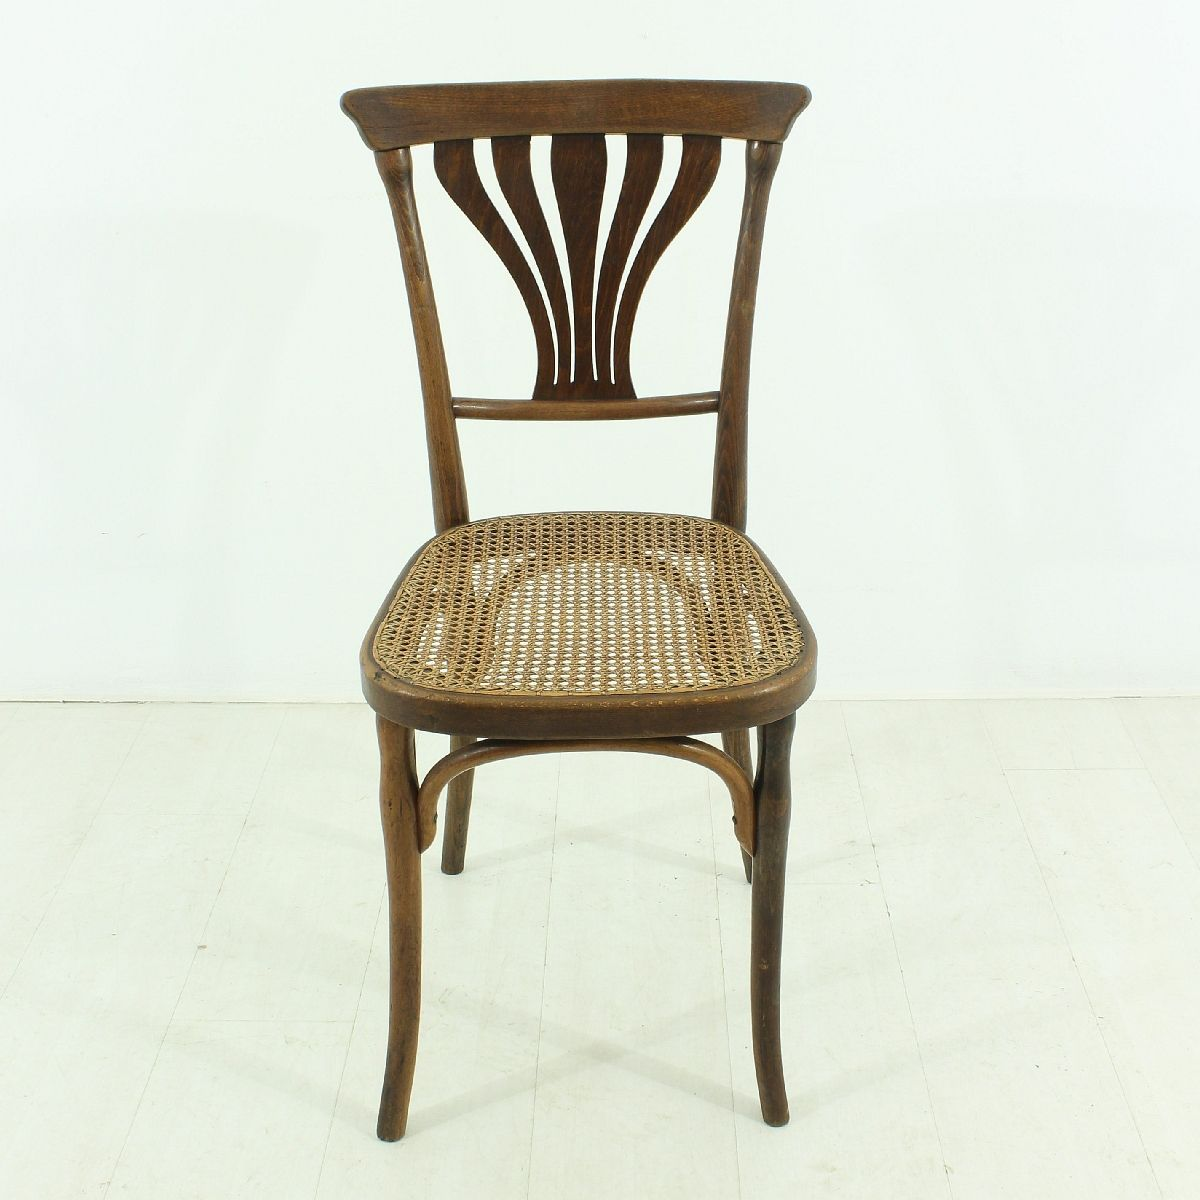 Cafe Chairs For Sale Antique Bentwood Bistro Chairs Set Of 2 For Sale At Pamono